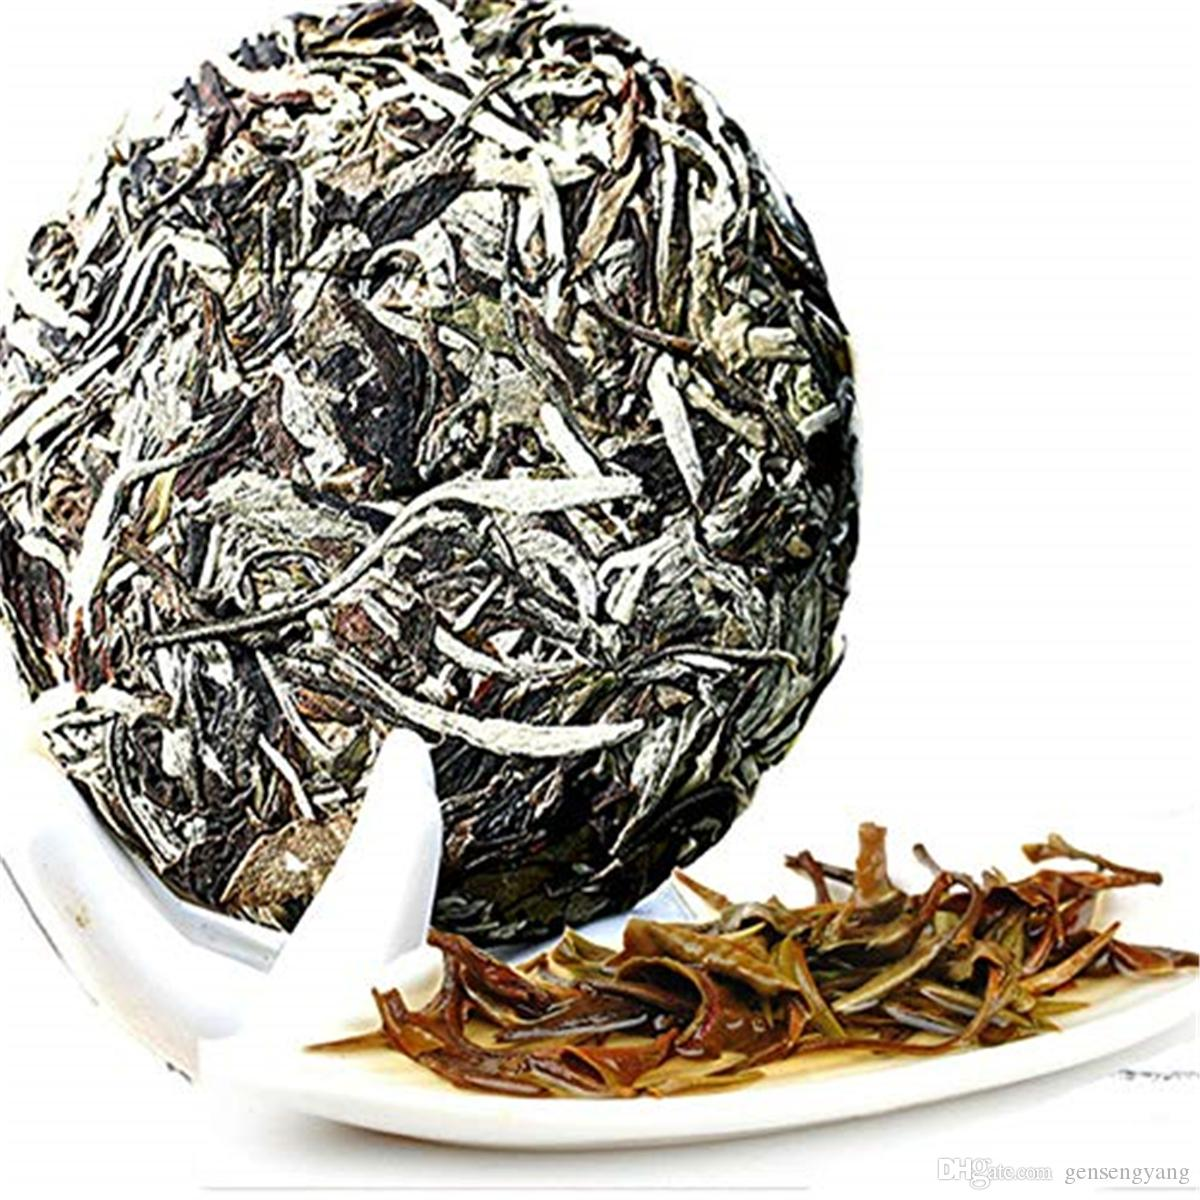 100g Raw Puer Tea Cake Yunnan Fragrant Moonlight White Tuocha Puer Tea Organic Natural Puer Old Tree Green Tea Hot sales